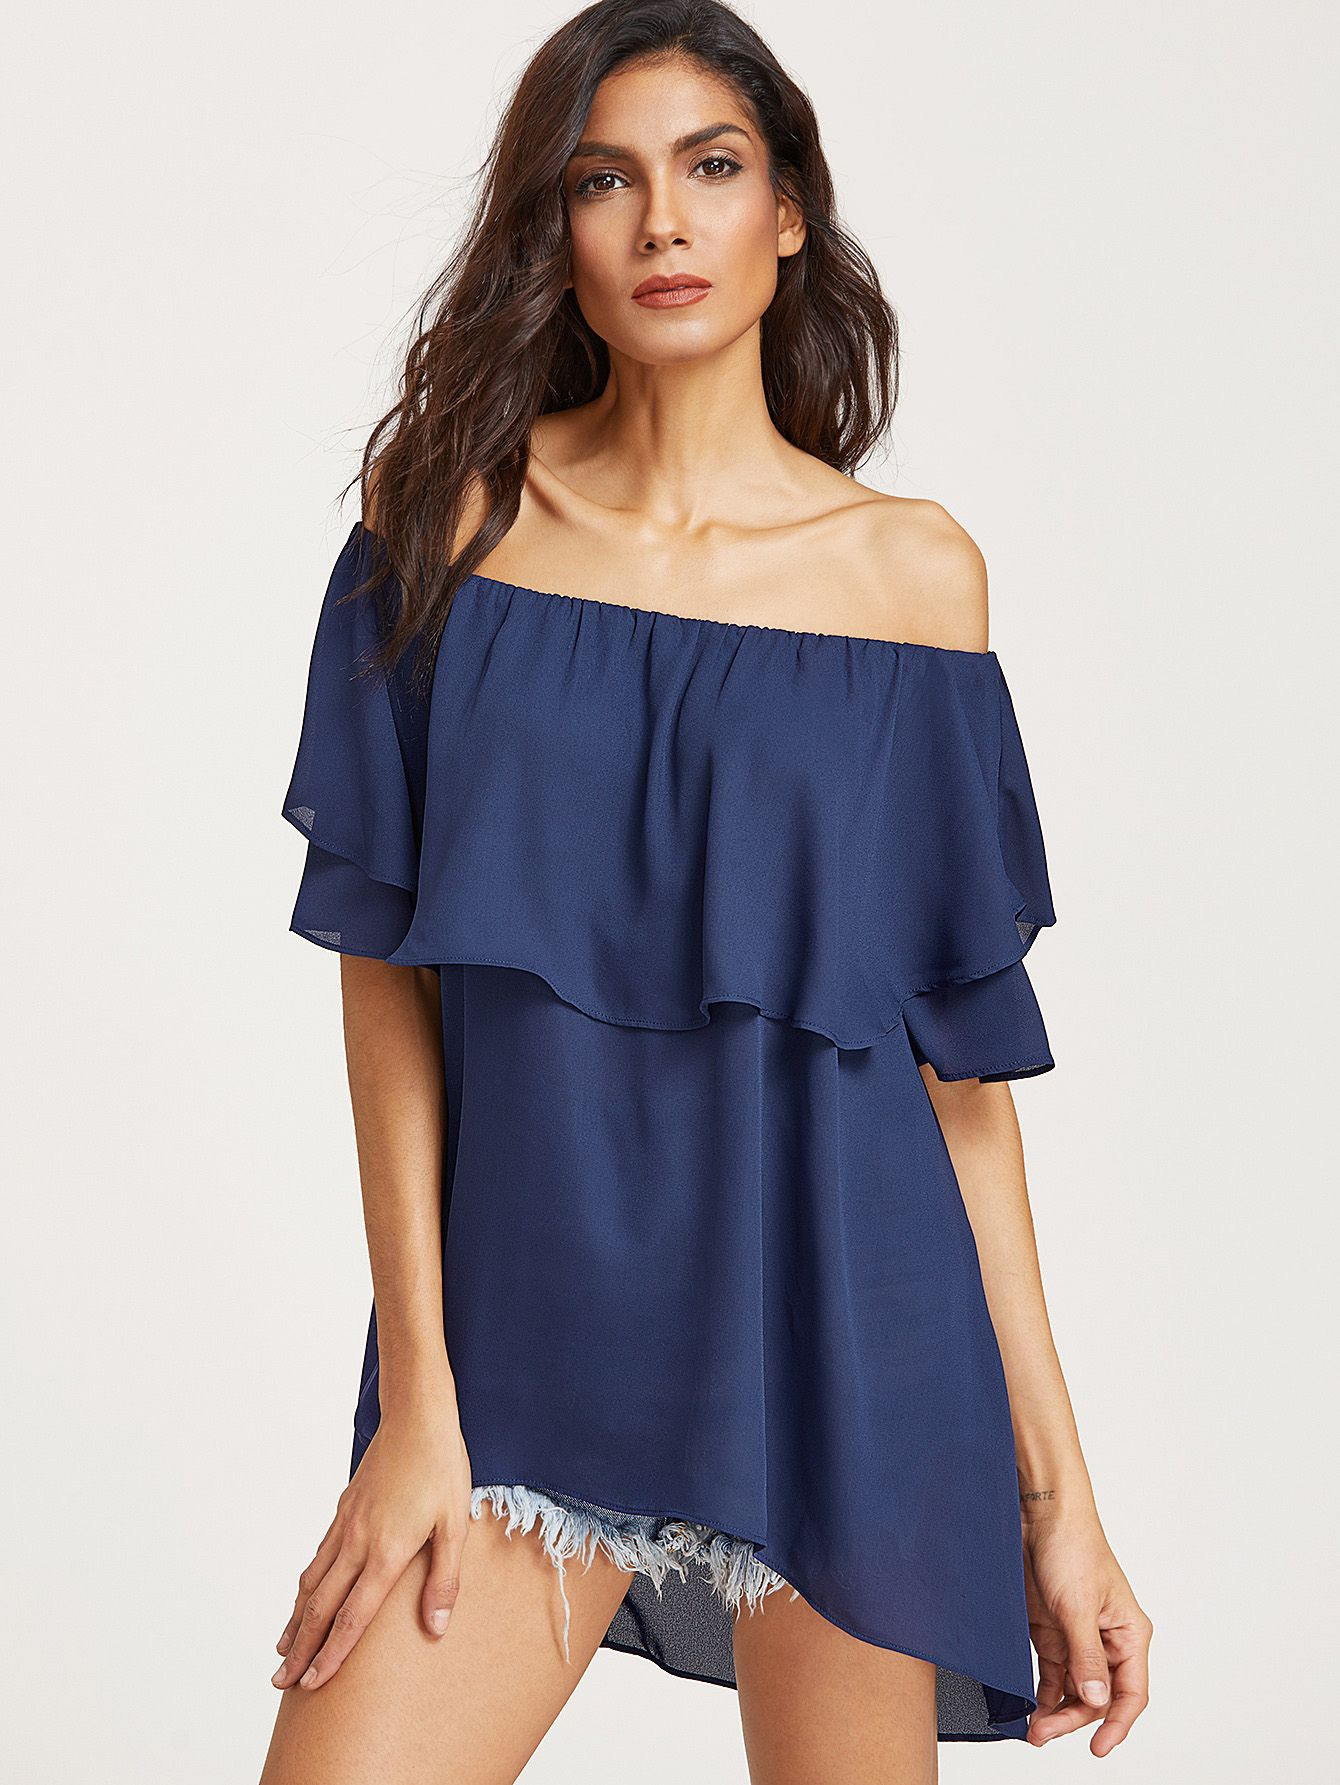 8e05c004d814 Shop Royal Blue Ruffle Off The Shoulder Top online. SheIn offers Royal Blue  Ruffle Off The Shoulder Top & more to fit your fashionable needs.